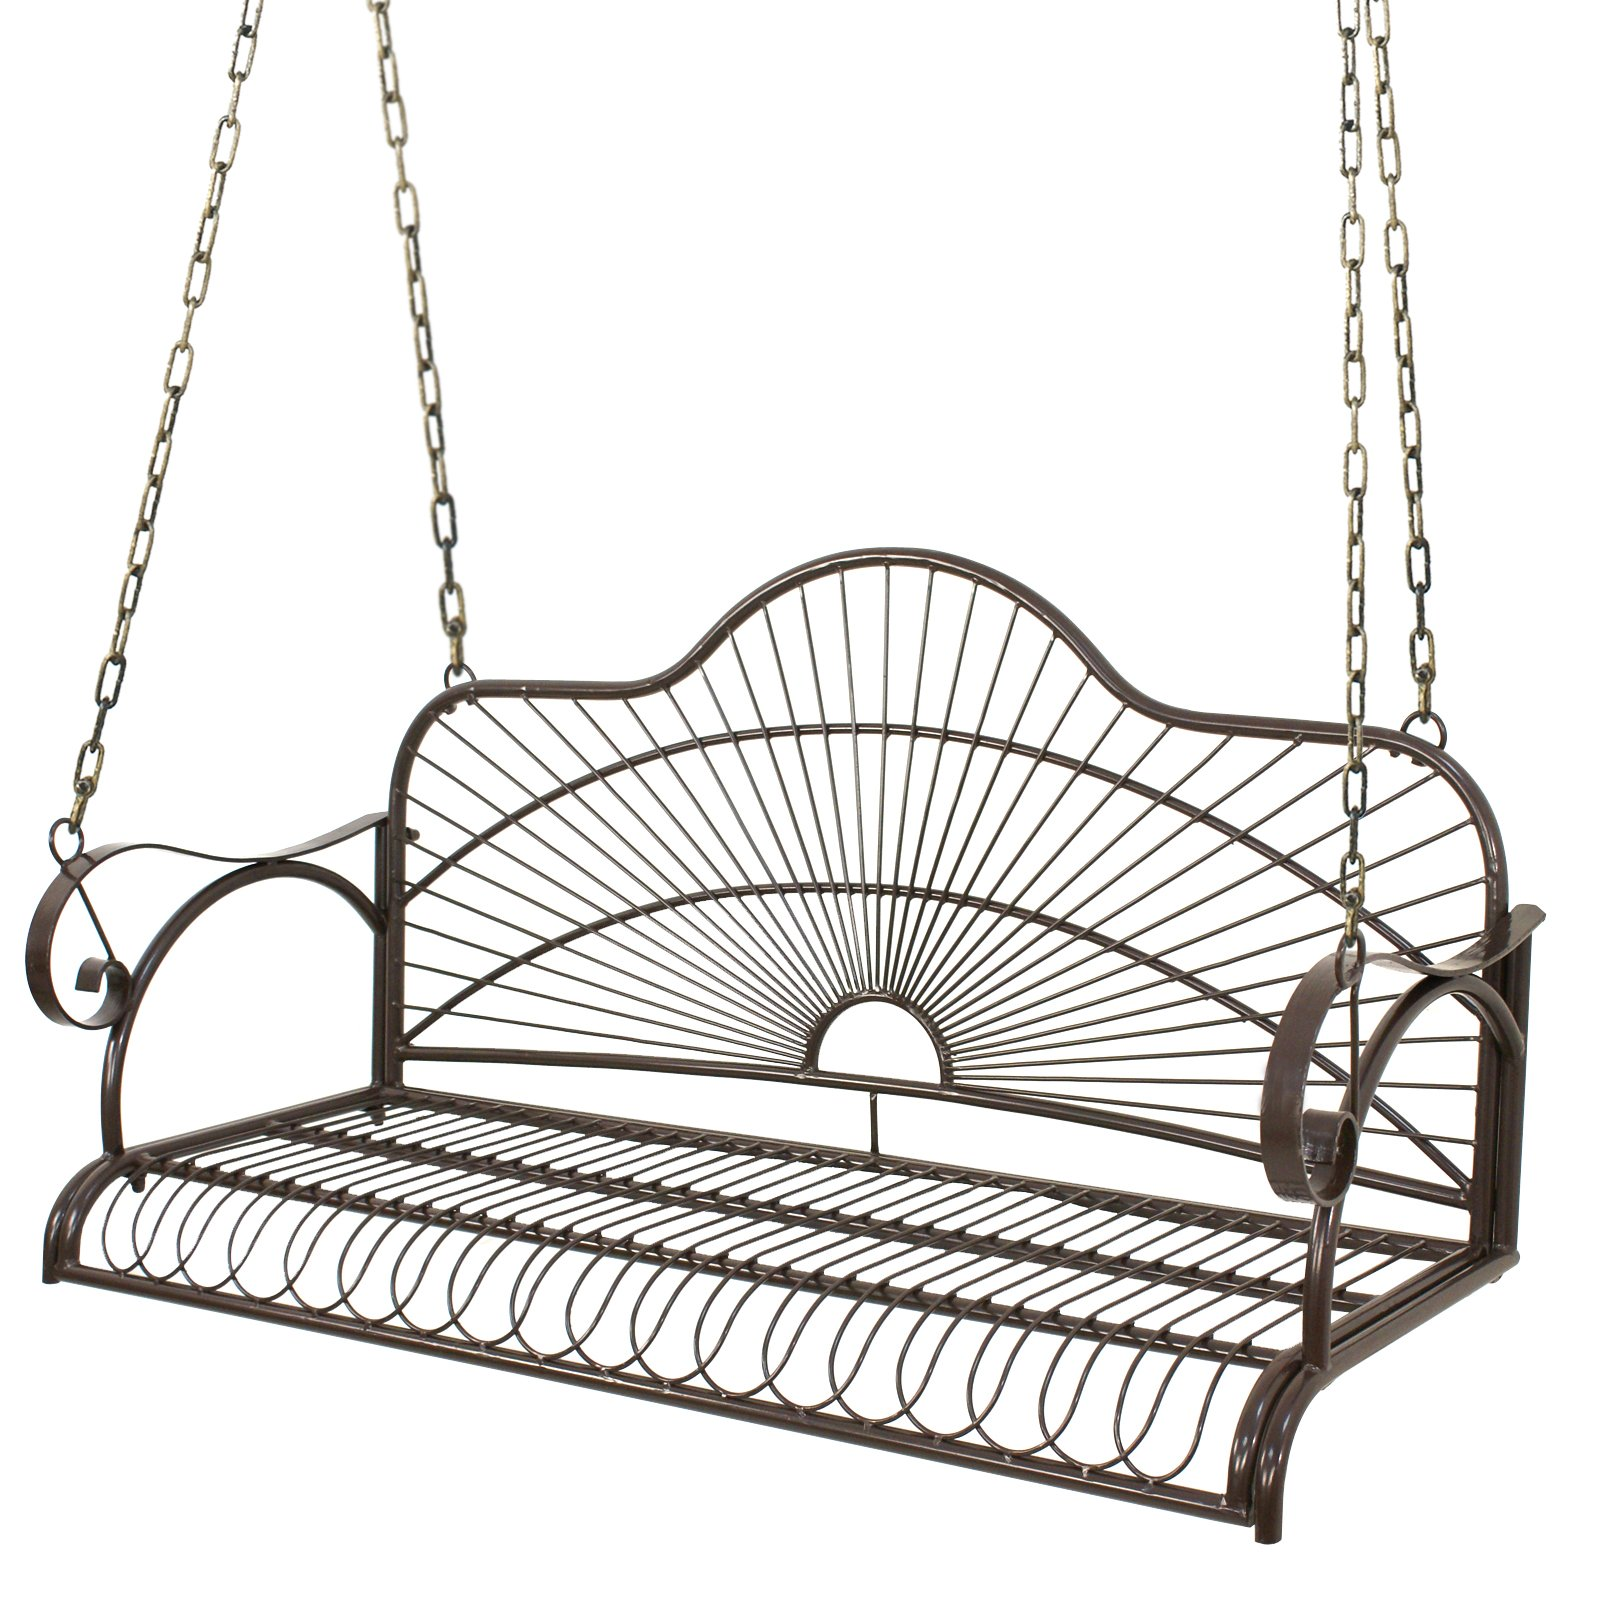 Smartxchoices Steel Hanging Porch Patio Swing Seat Heavy Duty Swing Chair with Arms for 2 Persons Outdoor, Garden Yard, Lawn, Deck, Powder Coated Rustic Deck Furniture